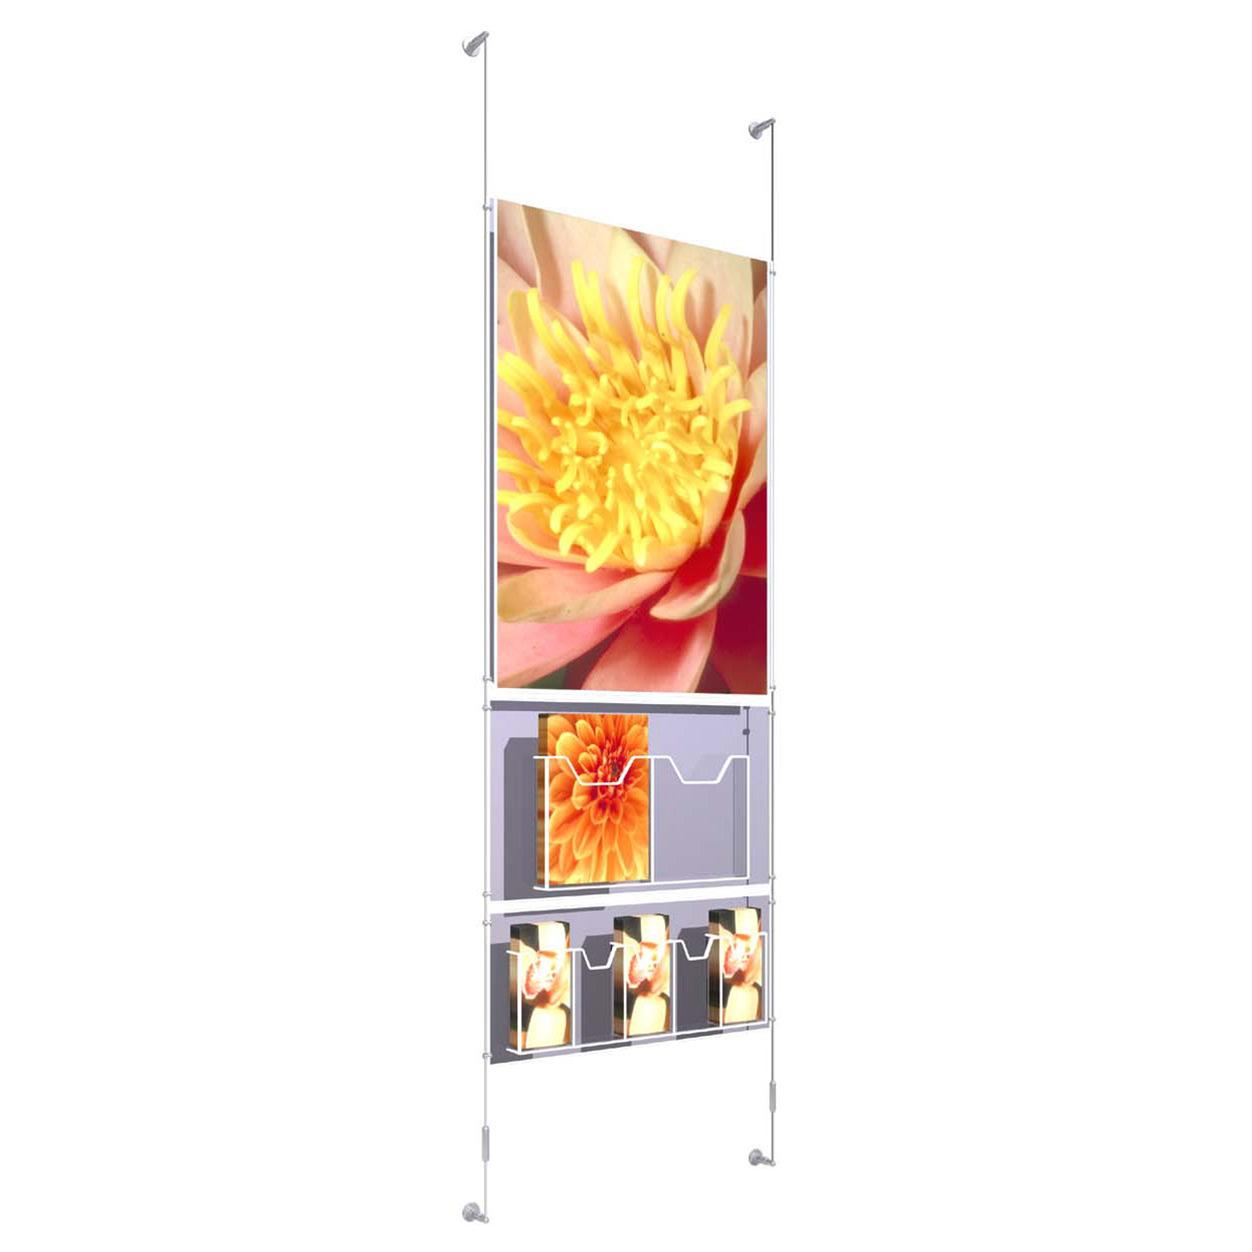 Wall Mounted Poster Kit A1 x 1 with 1 x Double A4 Dispenser and 1 x Quintuple 1/3 A4 Dispenser